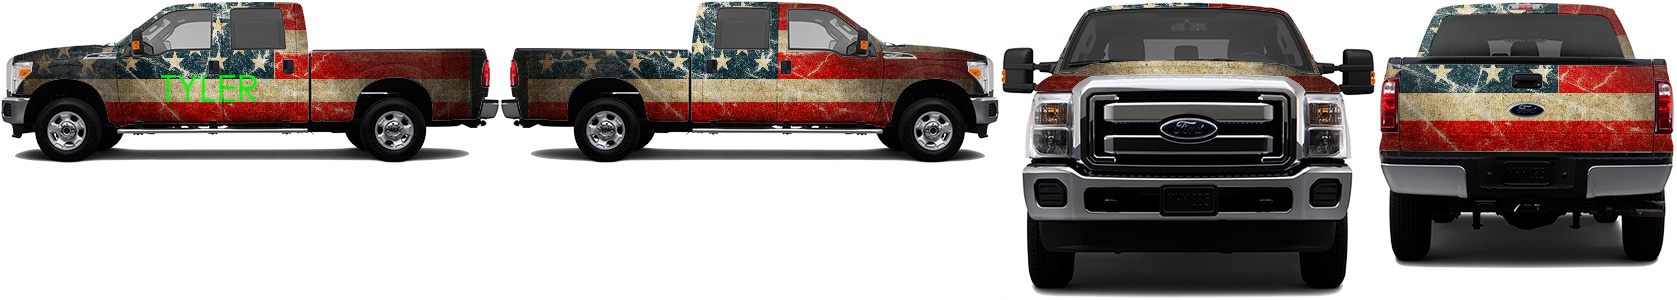 truck wrap custom design 26841 by new designer 30222 design your own truck wrap custom. Black Bedroom Furniture Sets. Home Design Ideas